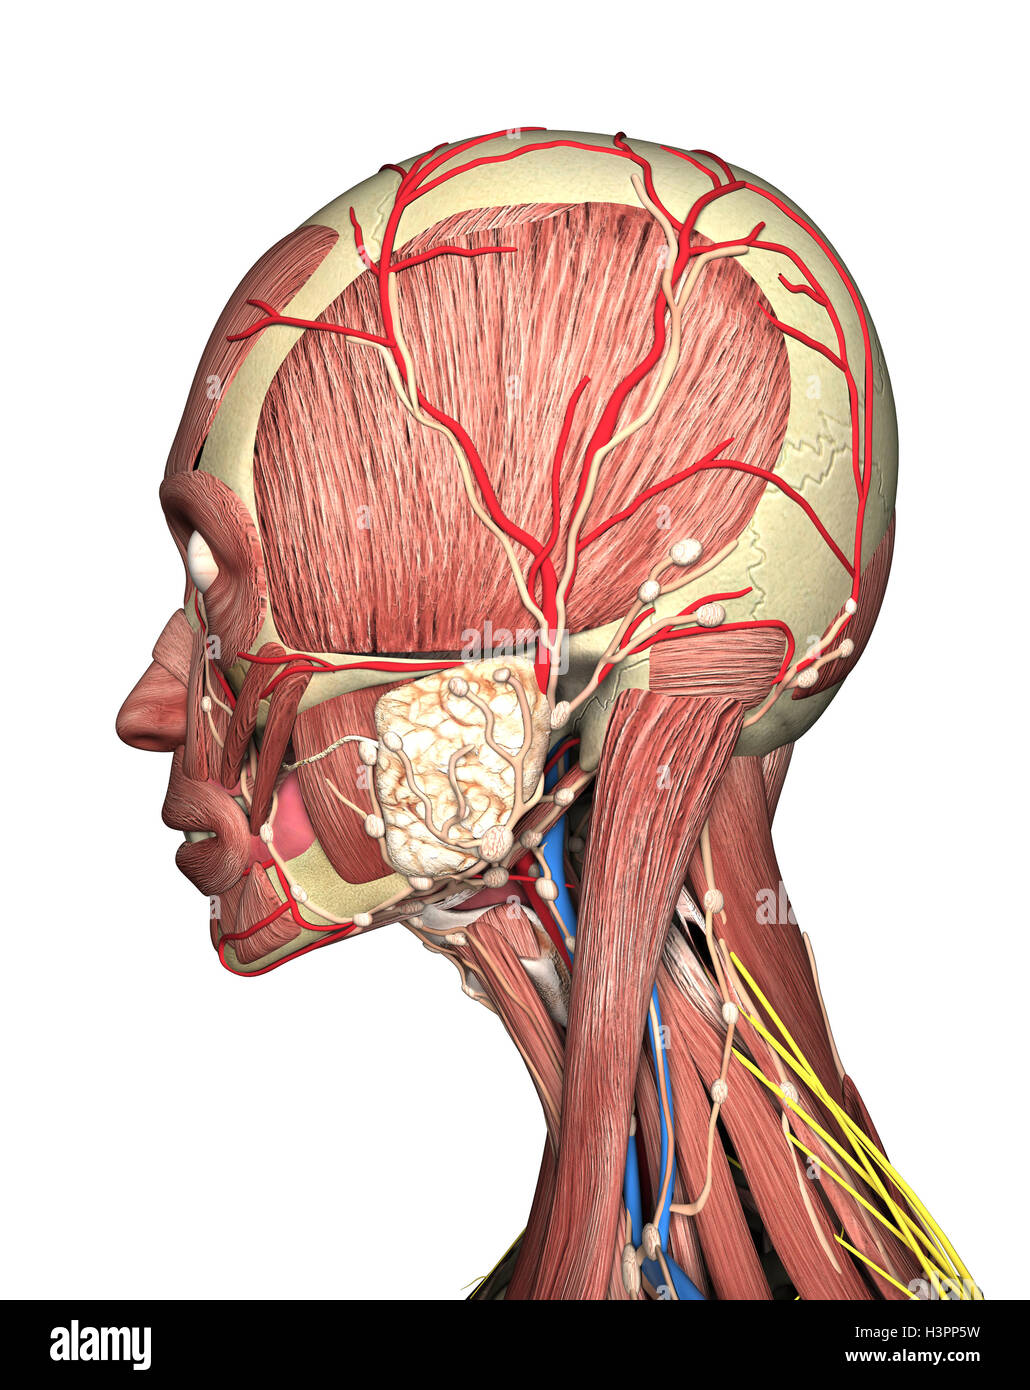 anatomy of head side view. 3D rendering Stock Photo: 122816901 - Alamy